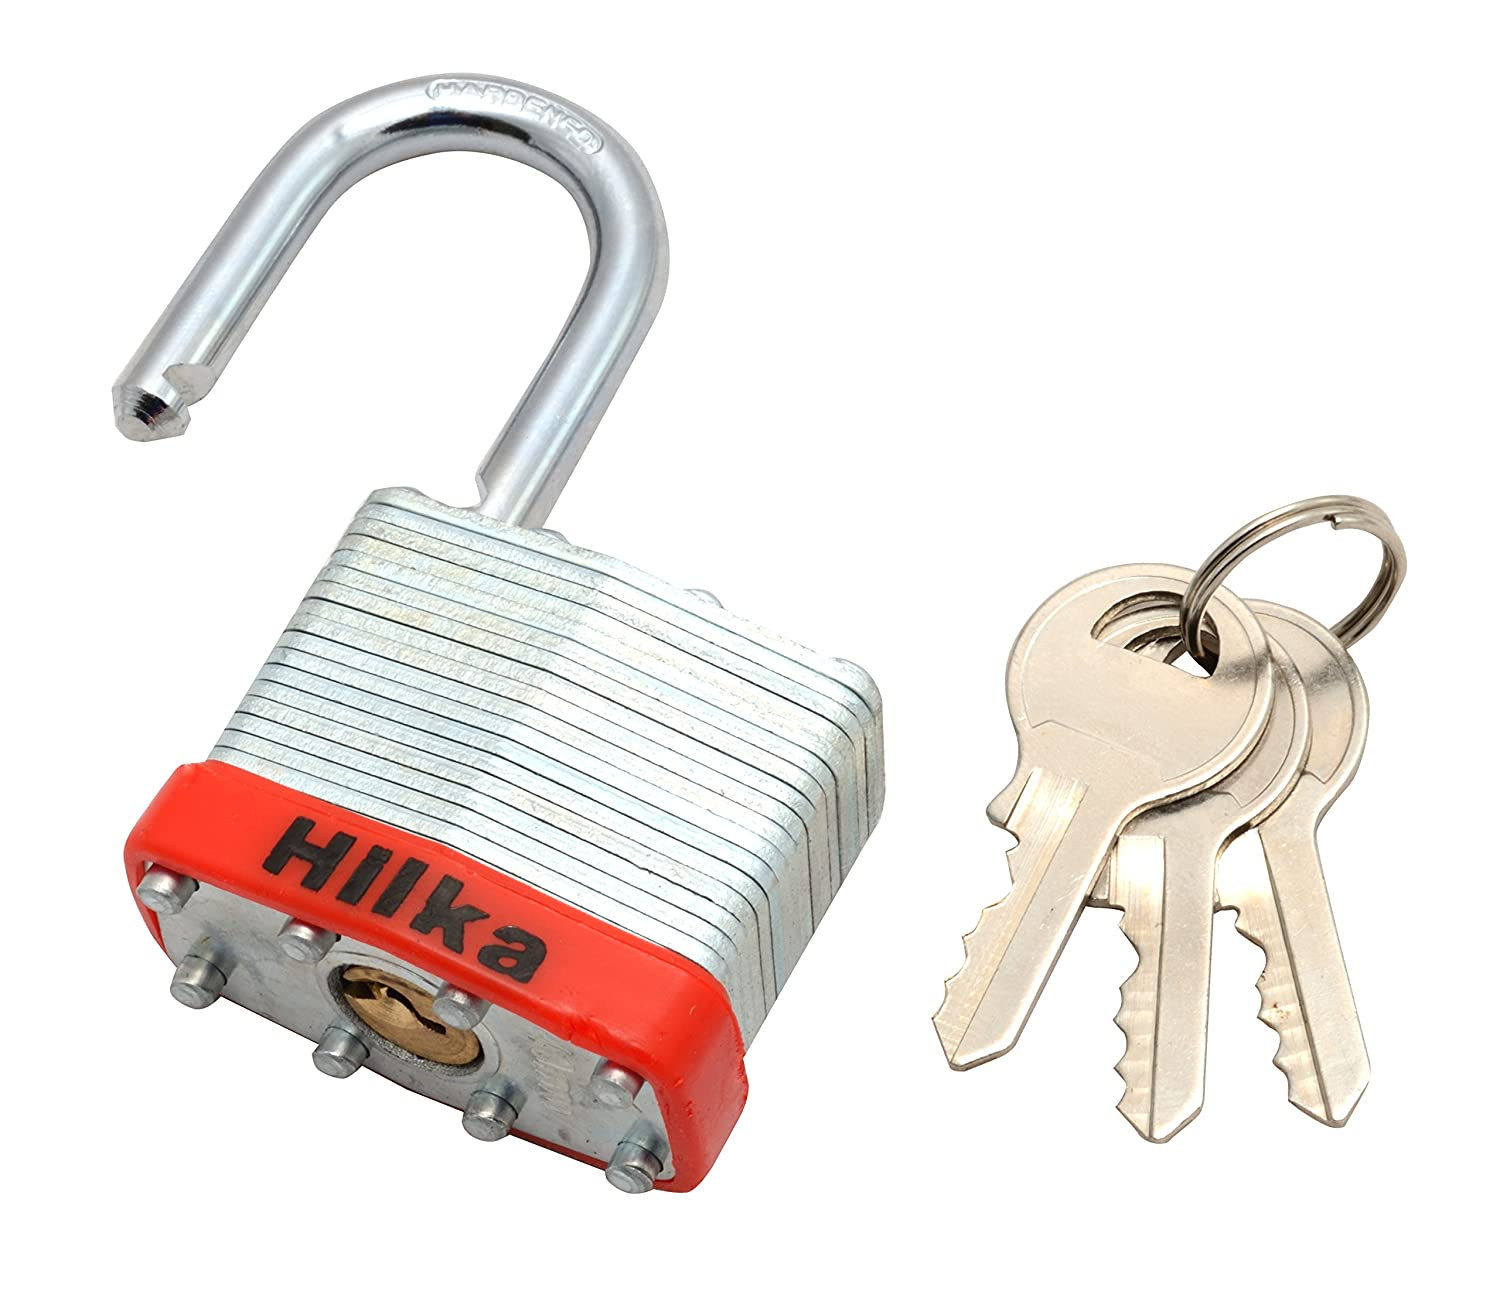 Hilka 70600040 40 mm Laminated Padlock Hilka Tools (UK) Ltd